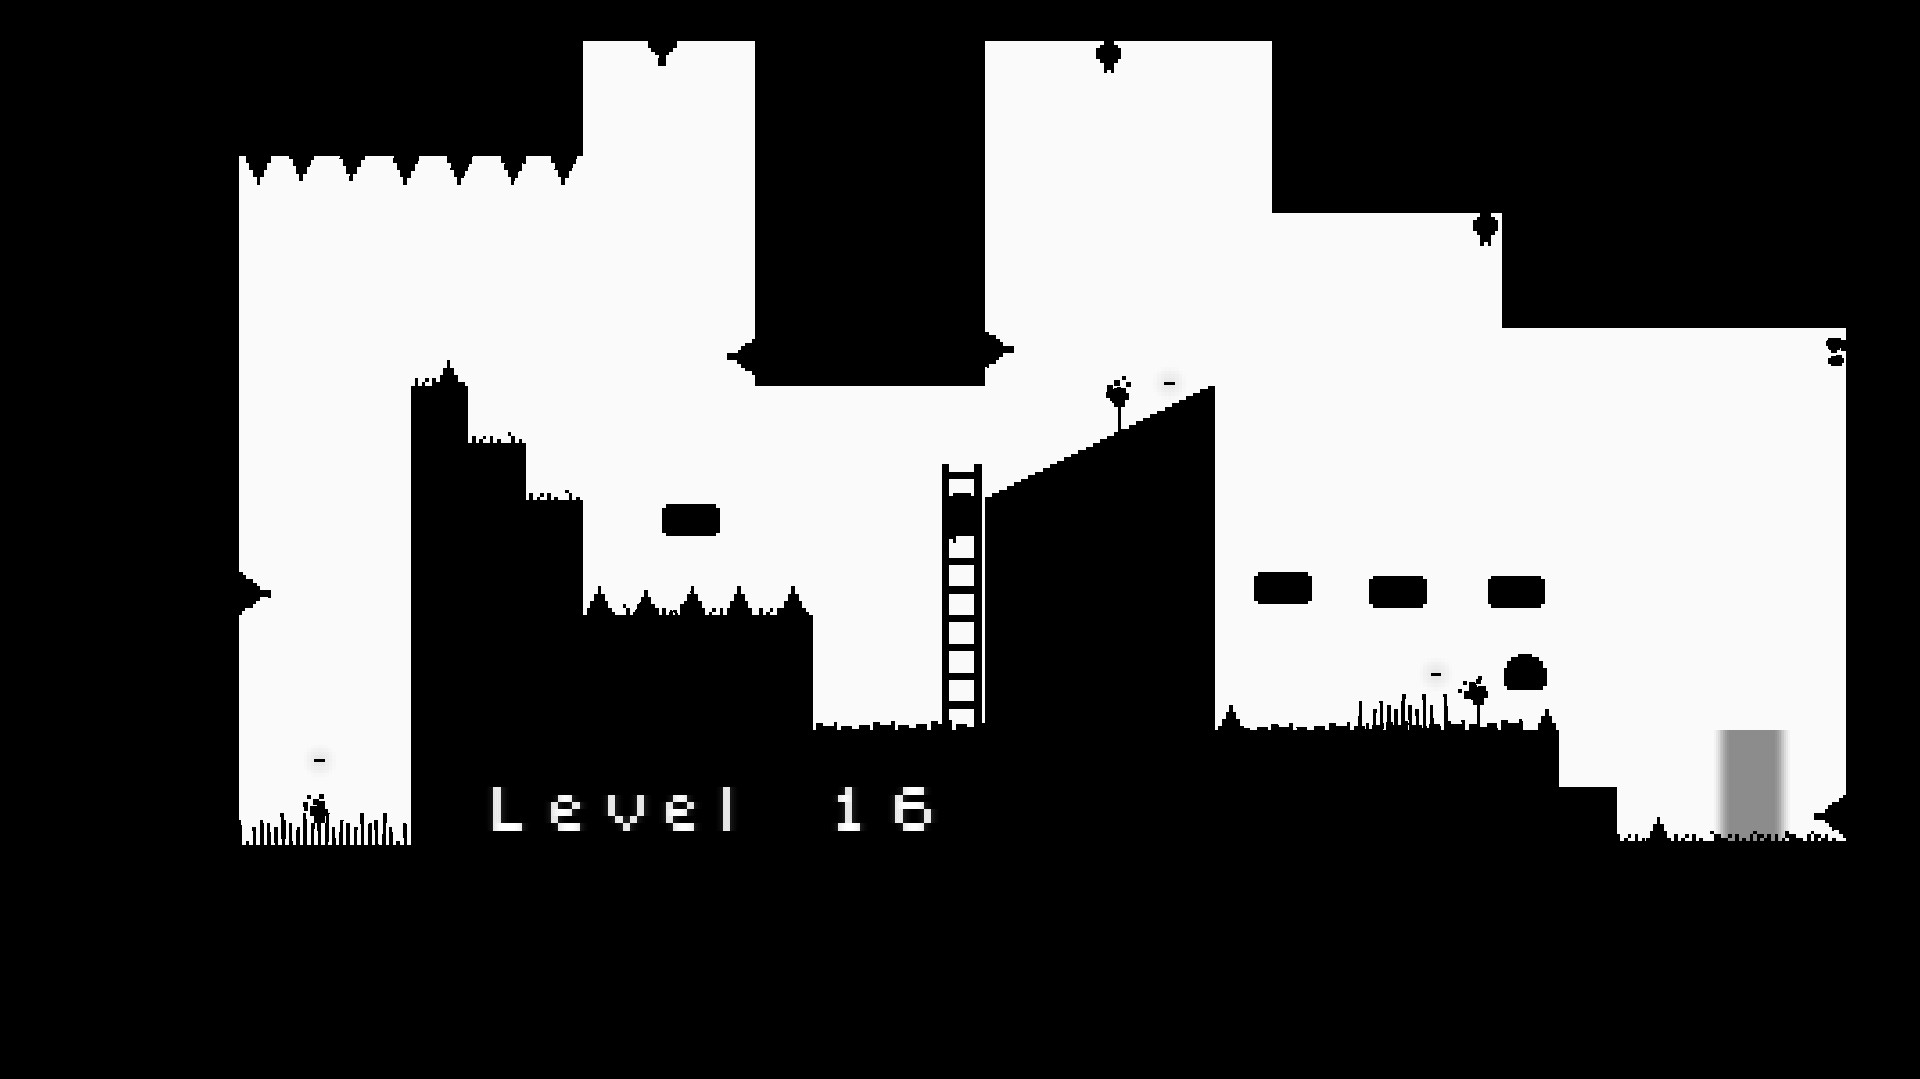 Blaite level 16. the character is climbing a ladder in the center of the screen and must run over several falling platforms past bats and a slime to reach the exit